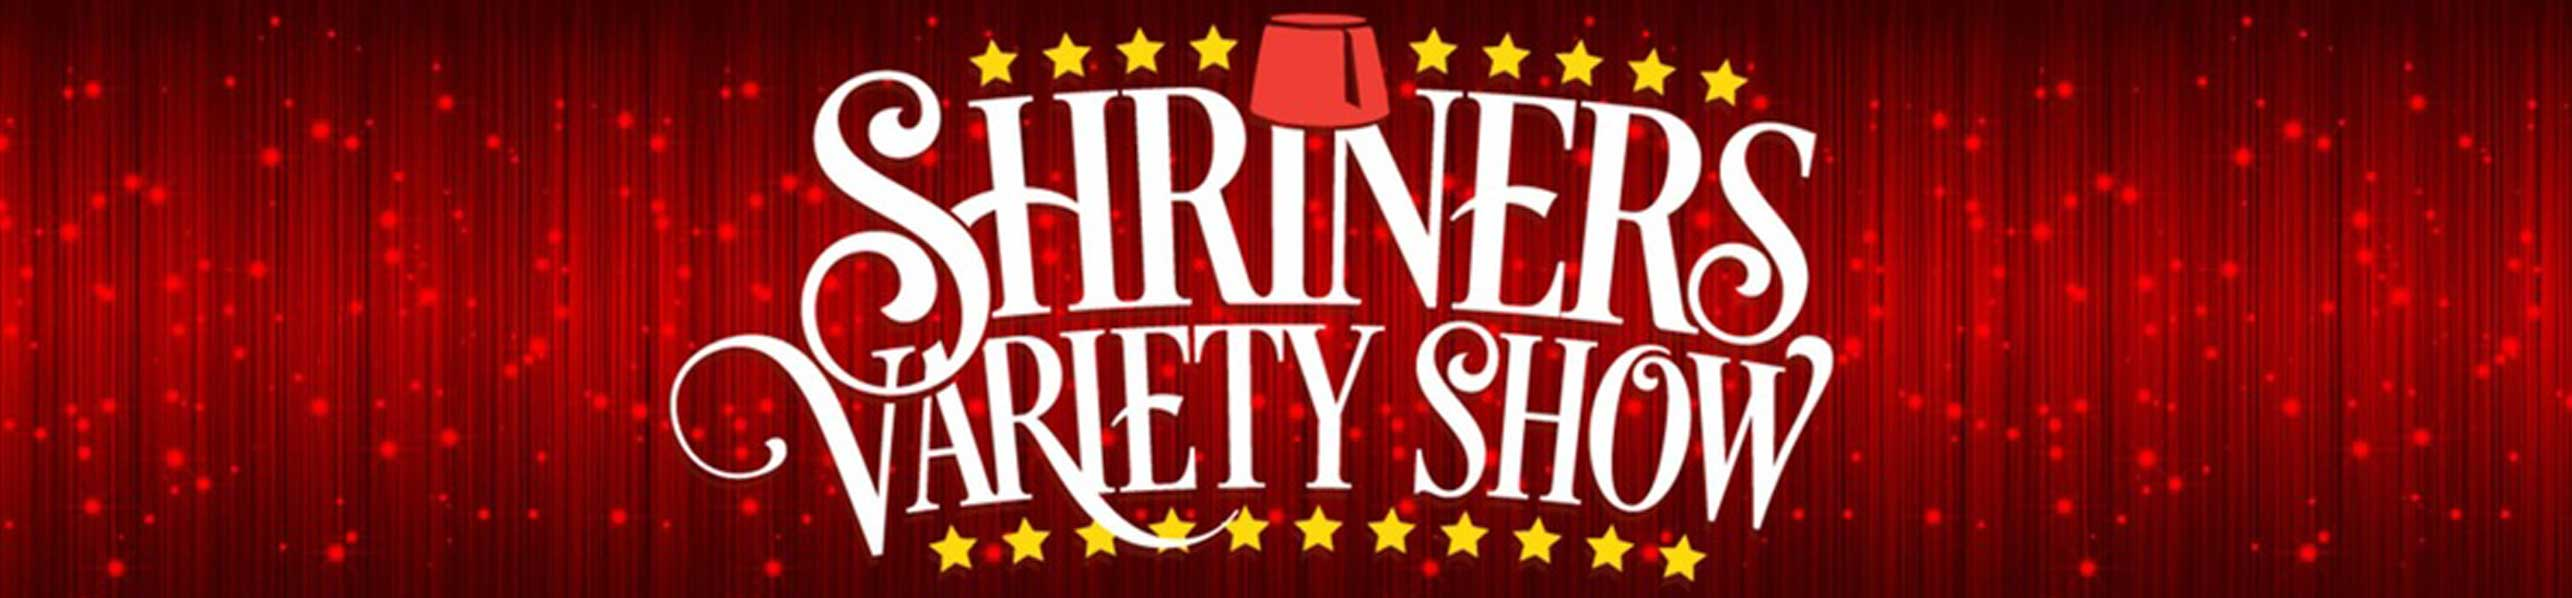 Shriners Variety Show 2016